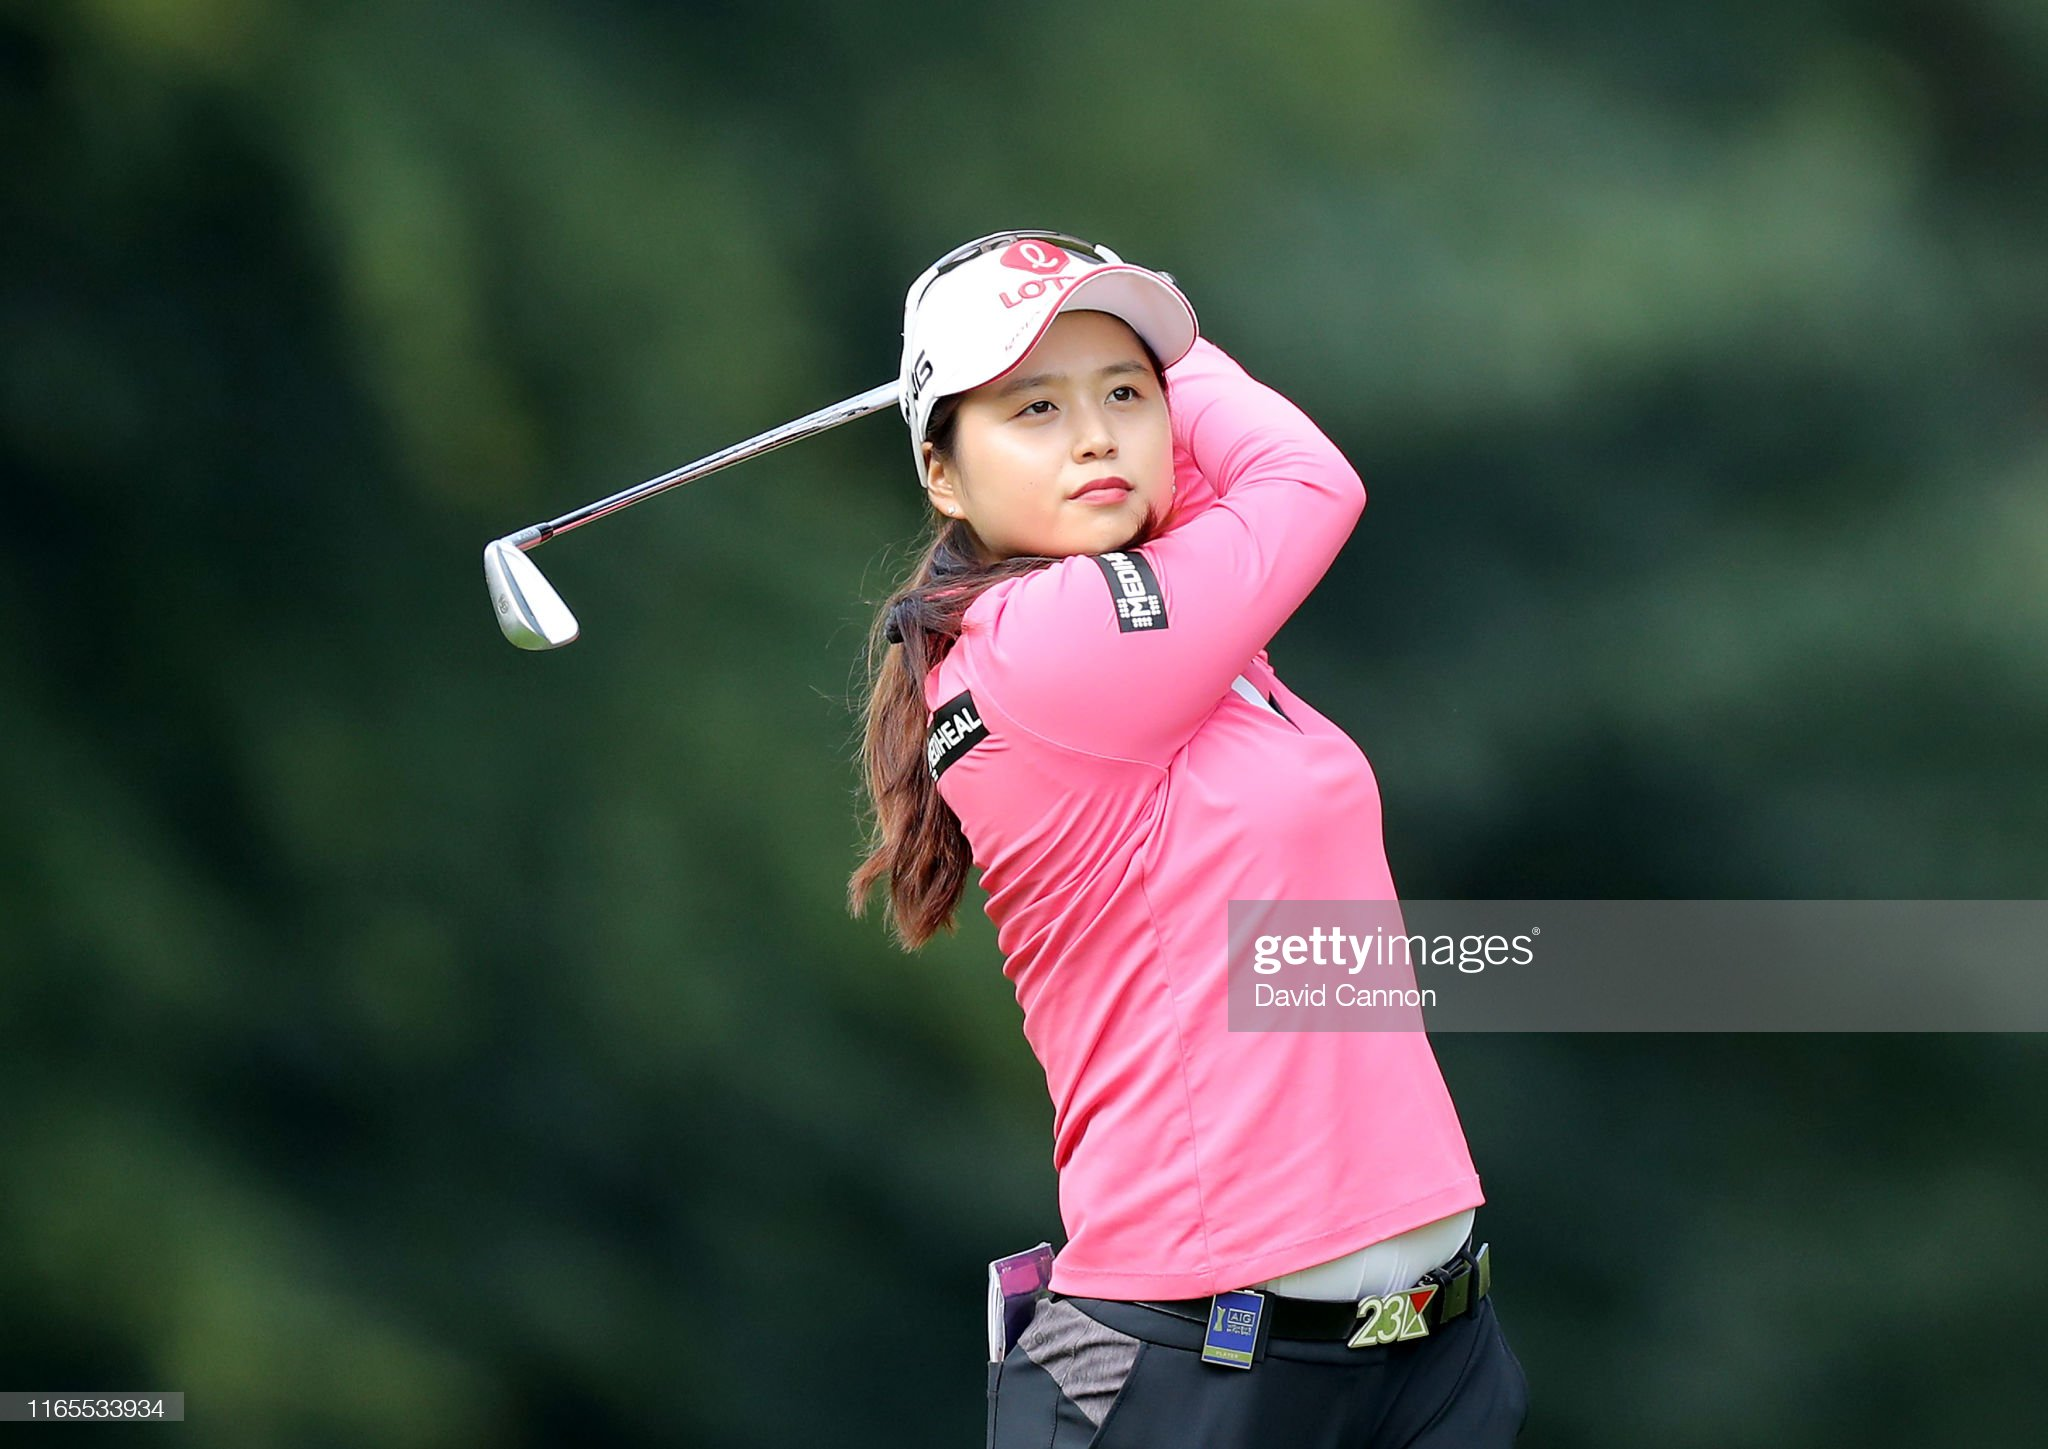 https://media.gettyimages.com/photos/hyejin-choi-of-south-korea-plays-her-second-shot-on-the-third-hole-picture-id1165533934?s=2048x2048